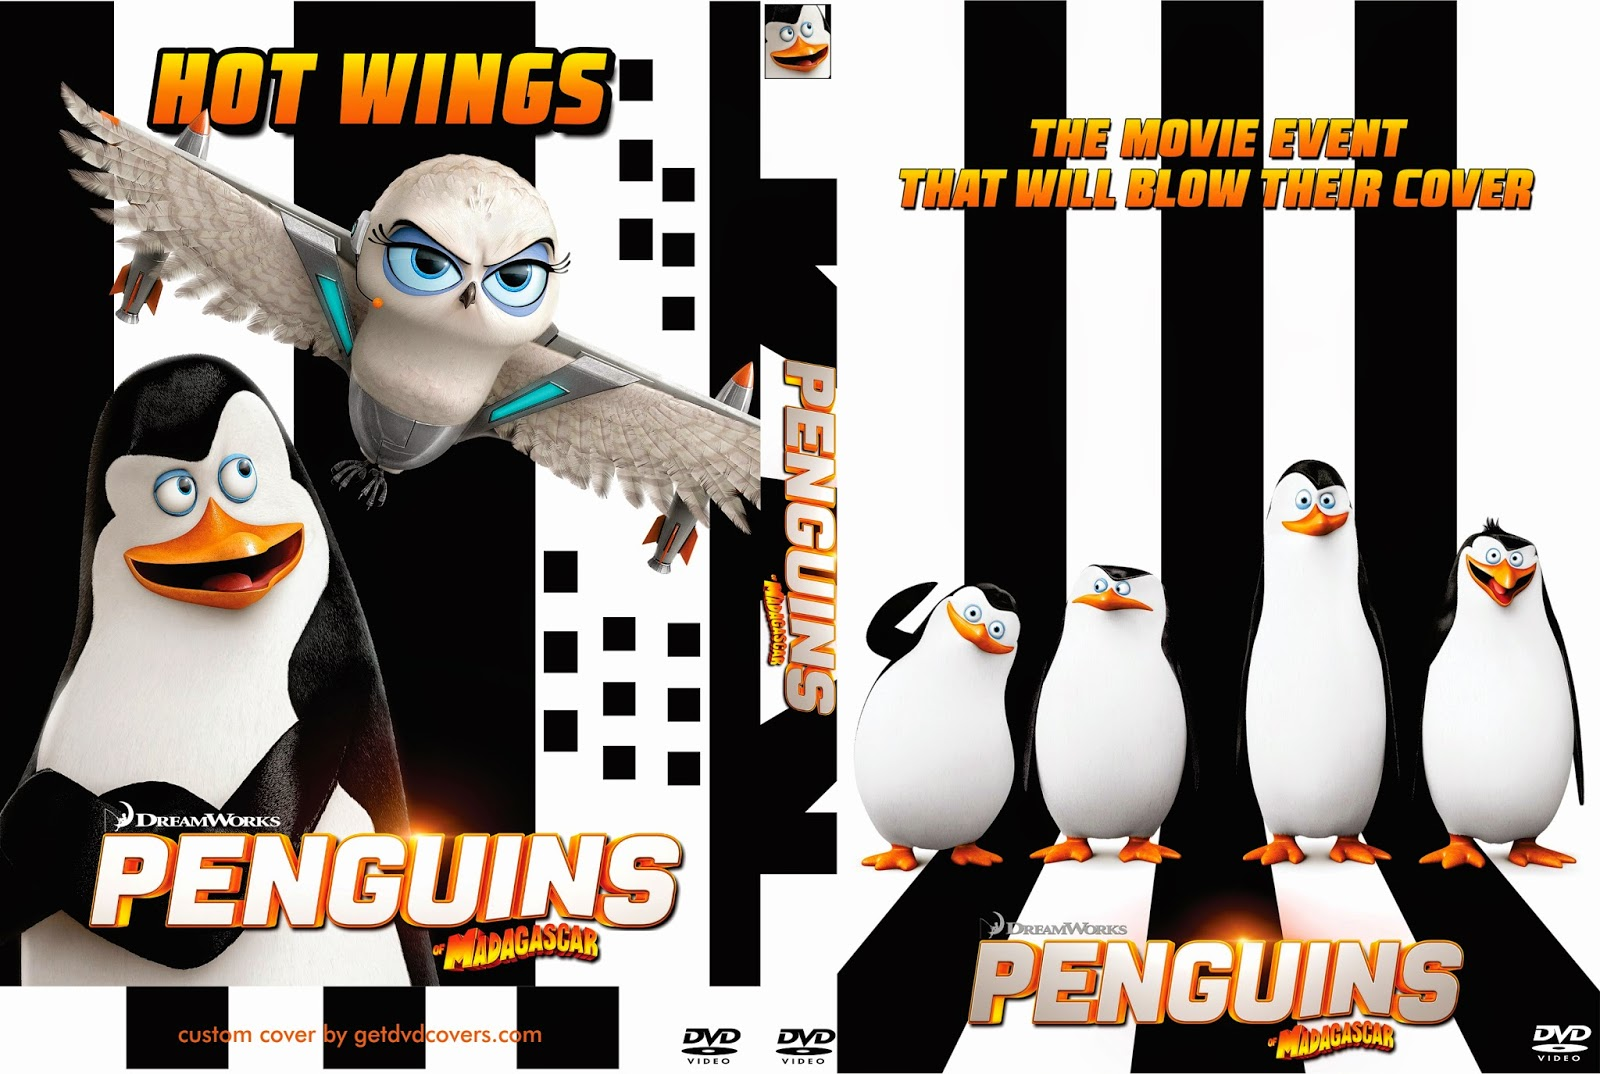 Download Os Pinguins de Madagascar BDRip XviD Dual Áudio Penguins 2Bof 2BMadagascar 2B 2014  2B  2BCover 2BDVD 2BMovie